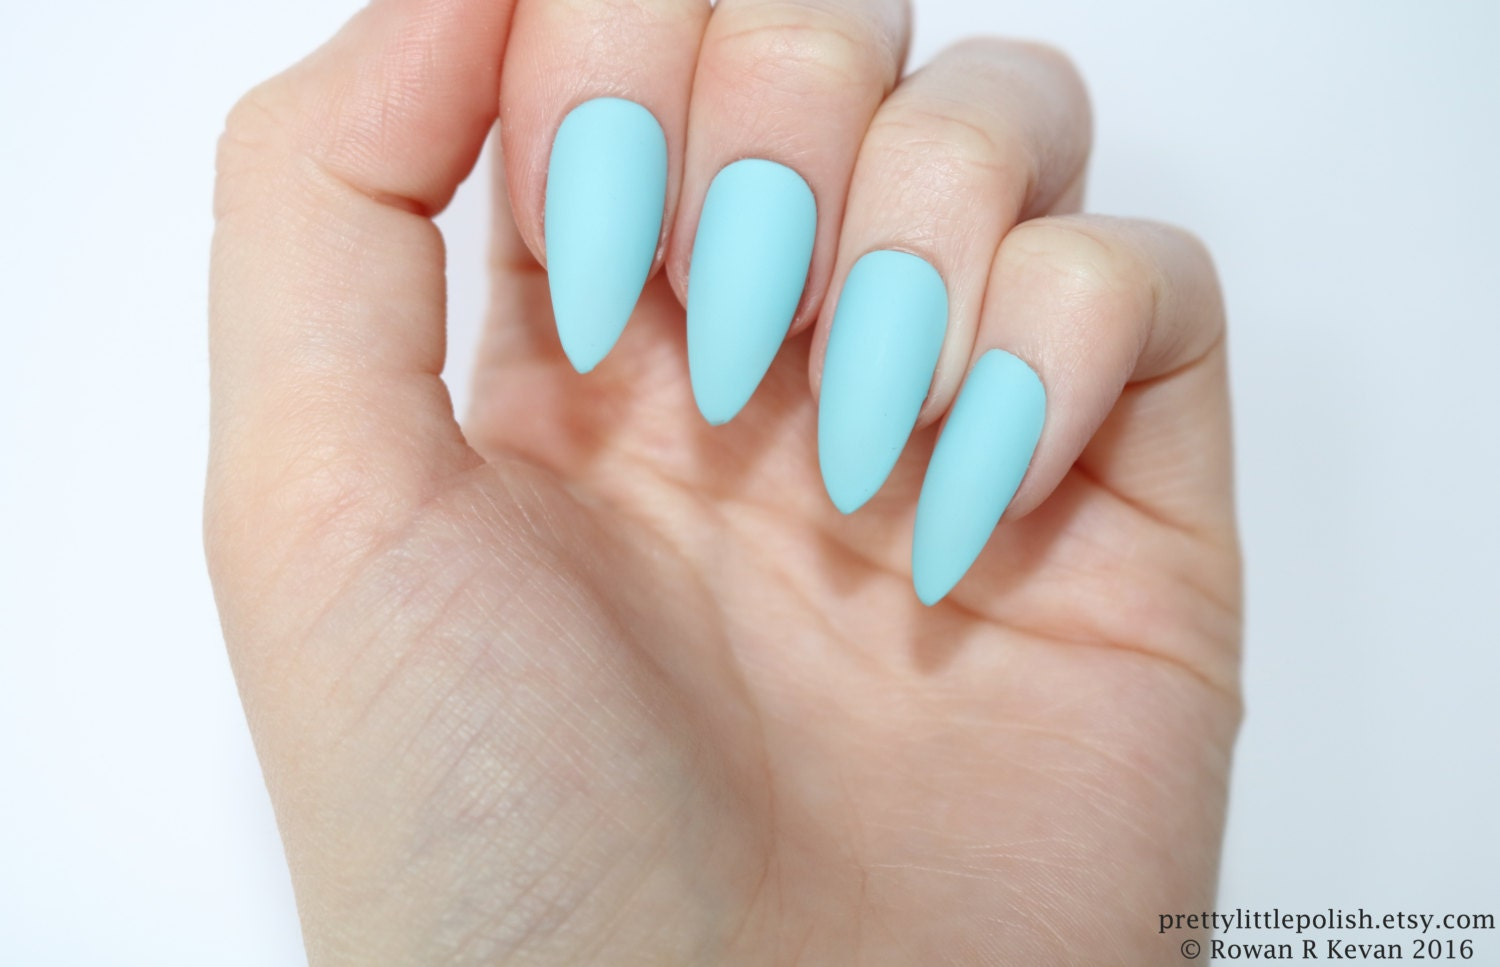 Stiletto nails, Matte light blue stiletto nails, Fake nails, Press ...